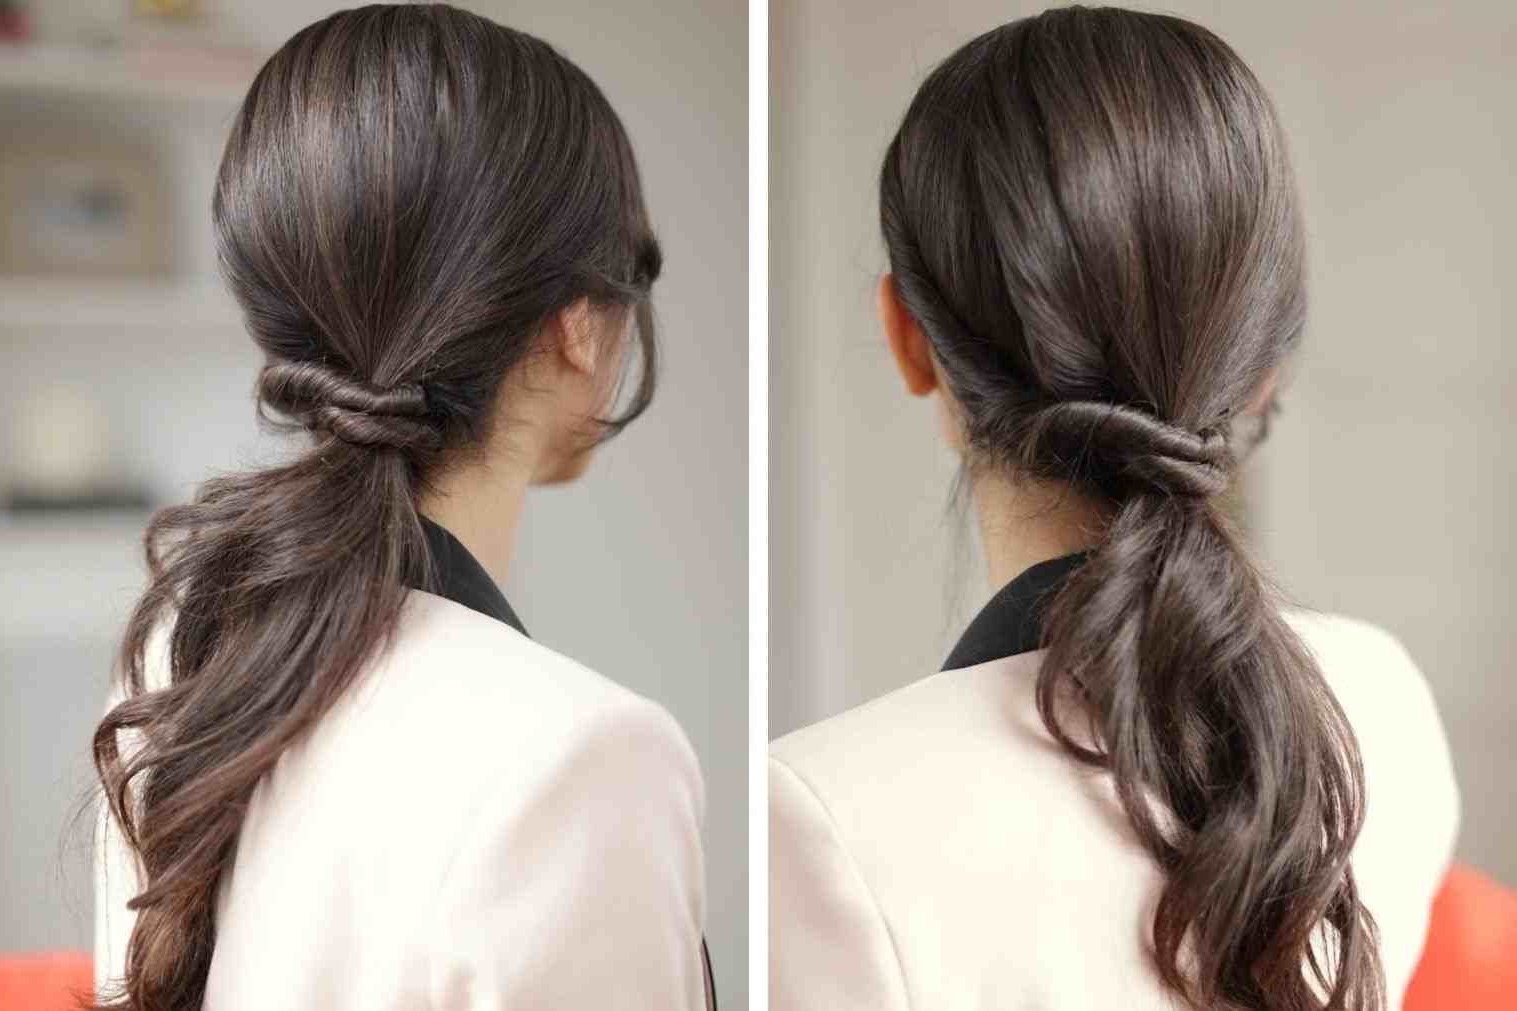 Braid Ponytail Youtuberhyoutubecom Wedding Hairstyles Messy Bridal For Well Known Low Messy Ponytail Hairstyles (View 4 of 20)